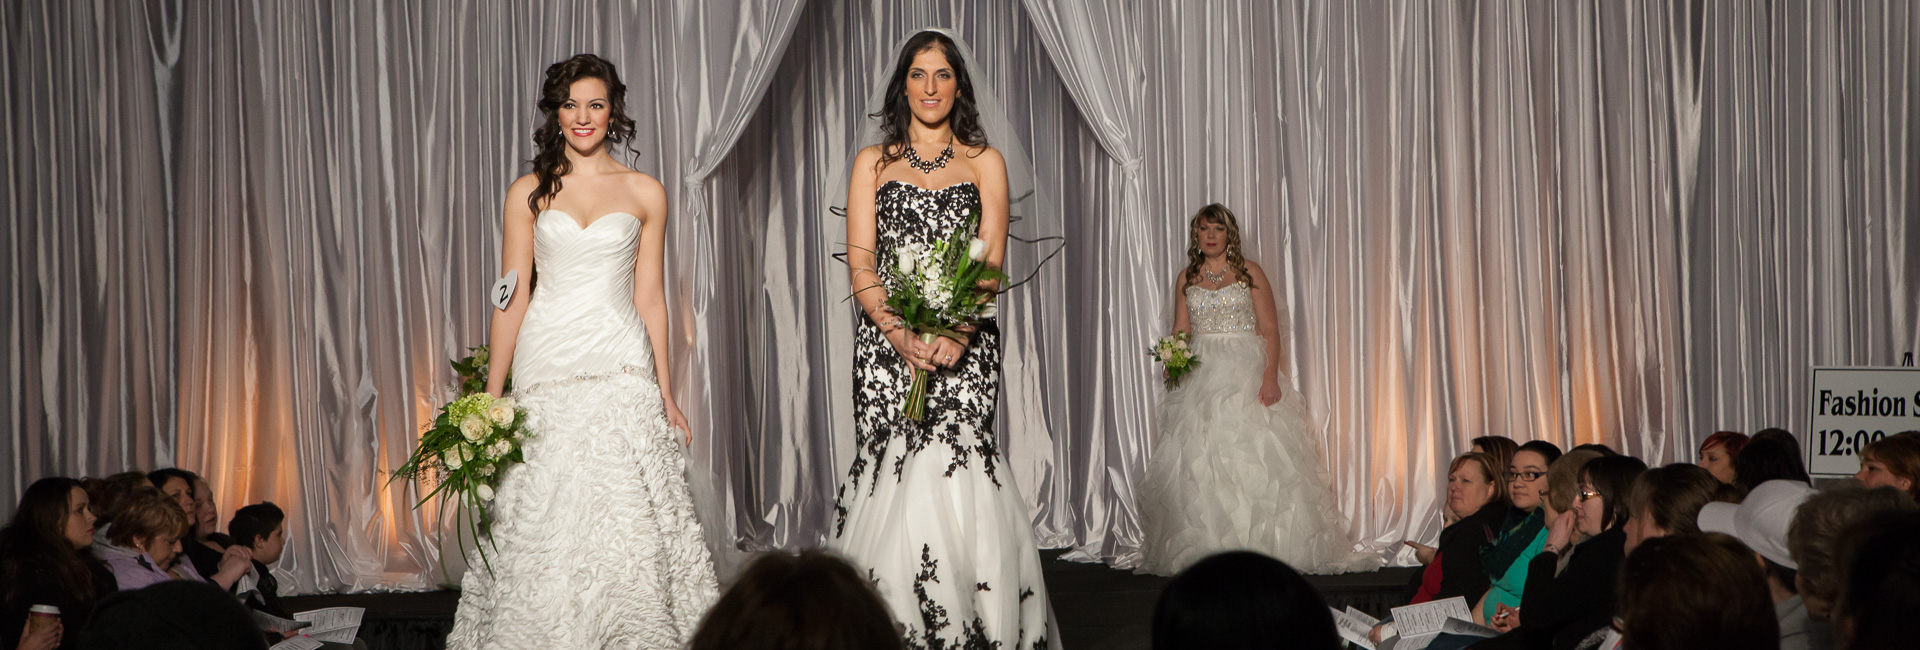 Fashion show at the Oregon Wedding Showcase in Salem, OR